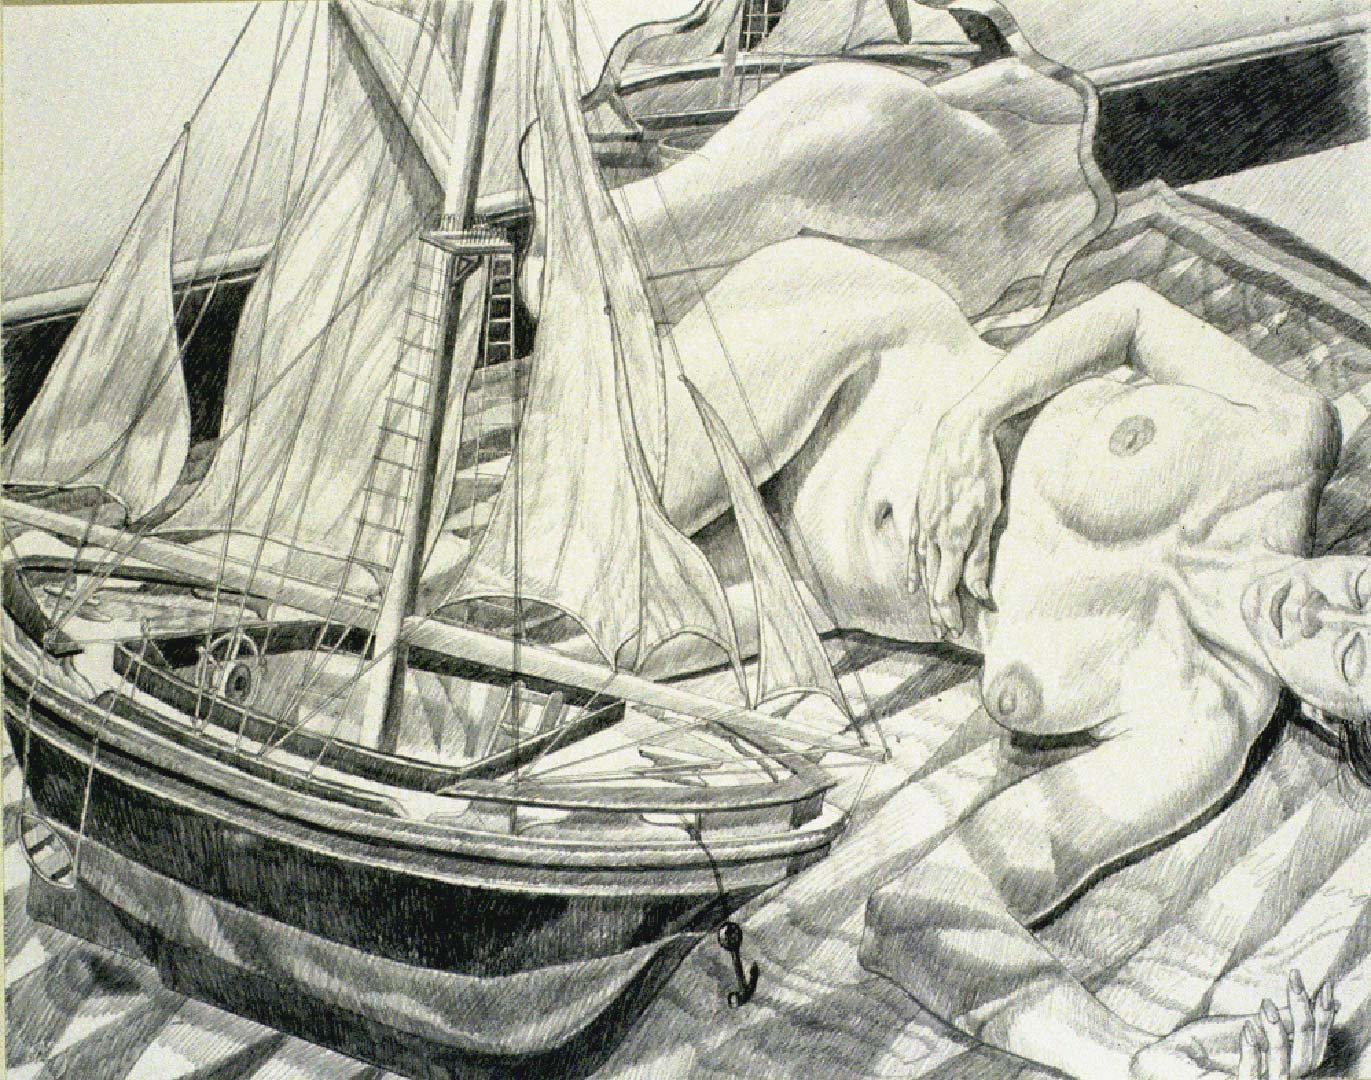 1990 Model with Model Boat Pencil 23.125 x 29